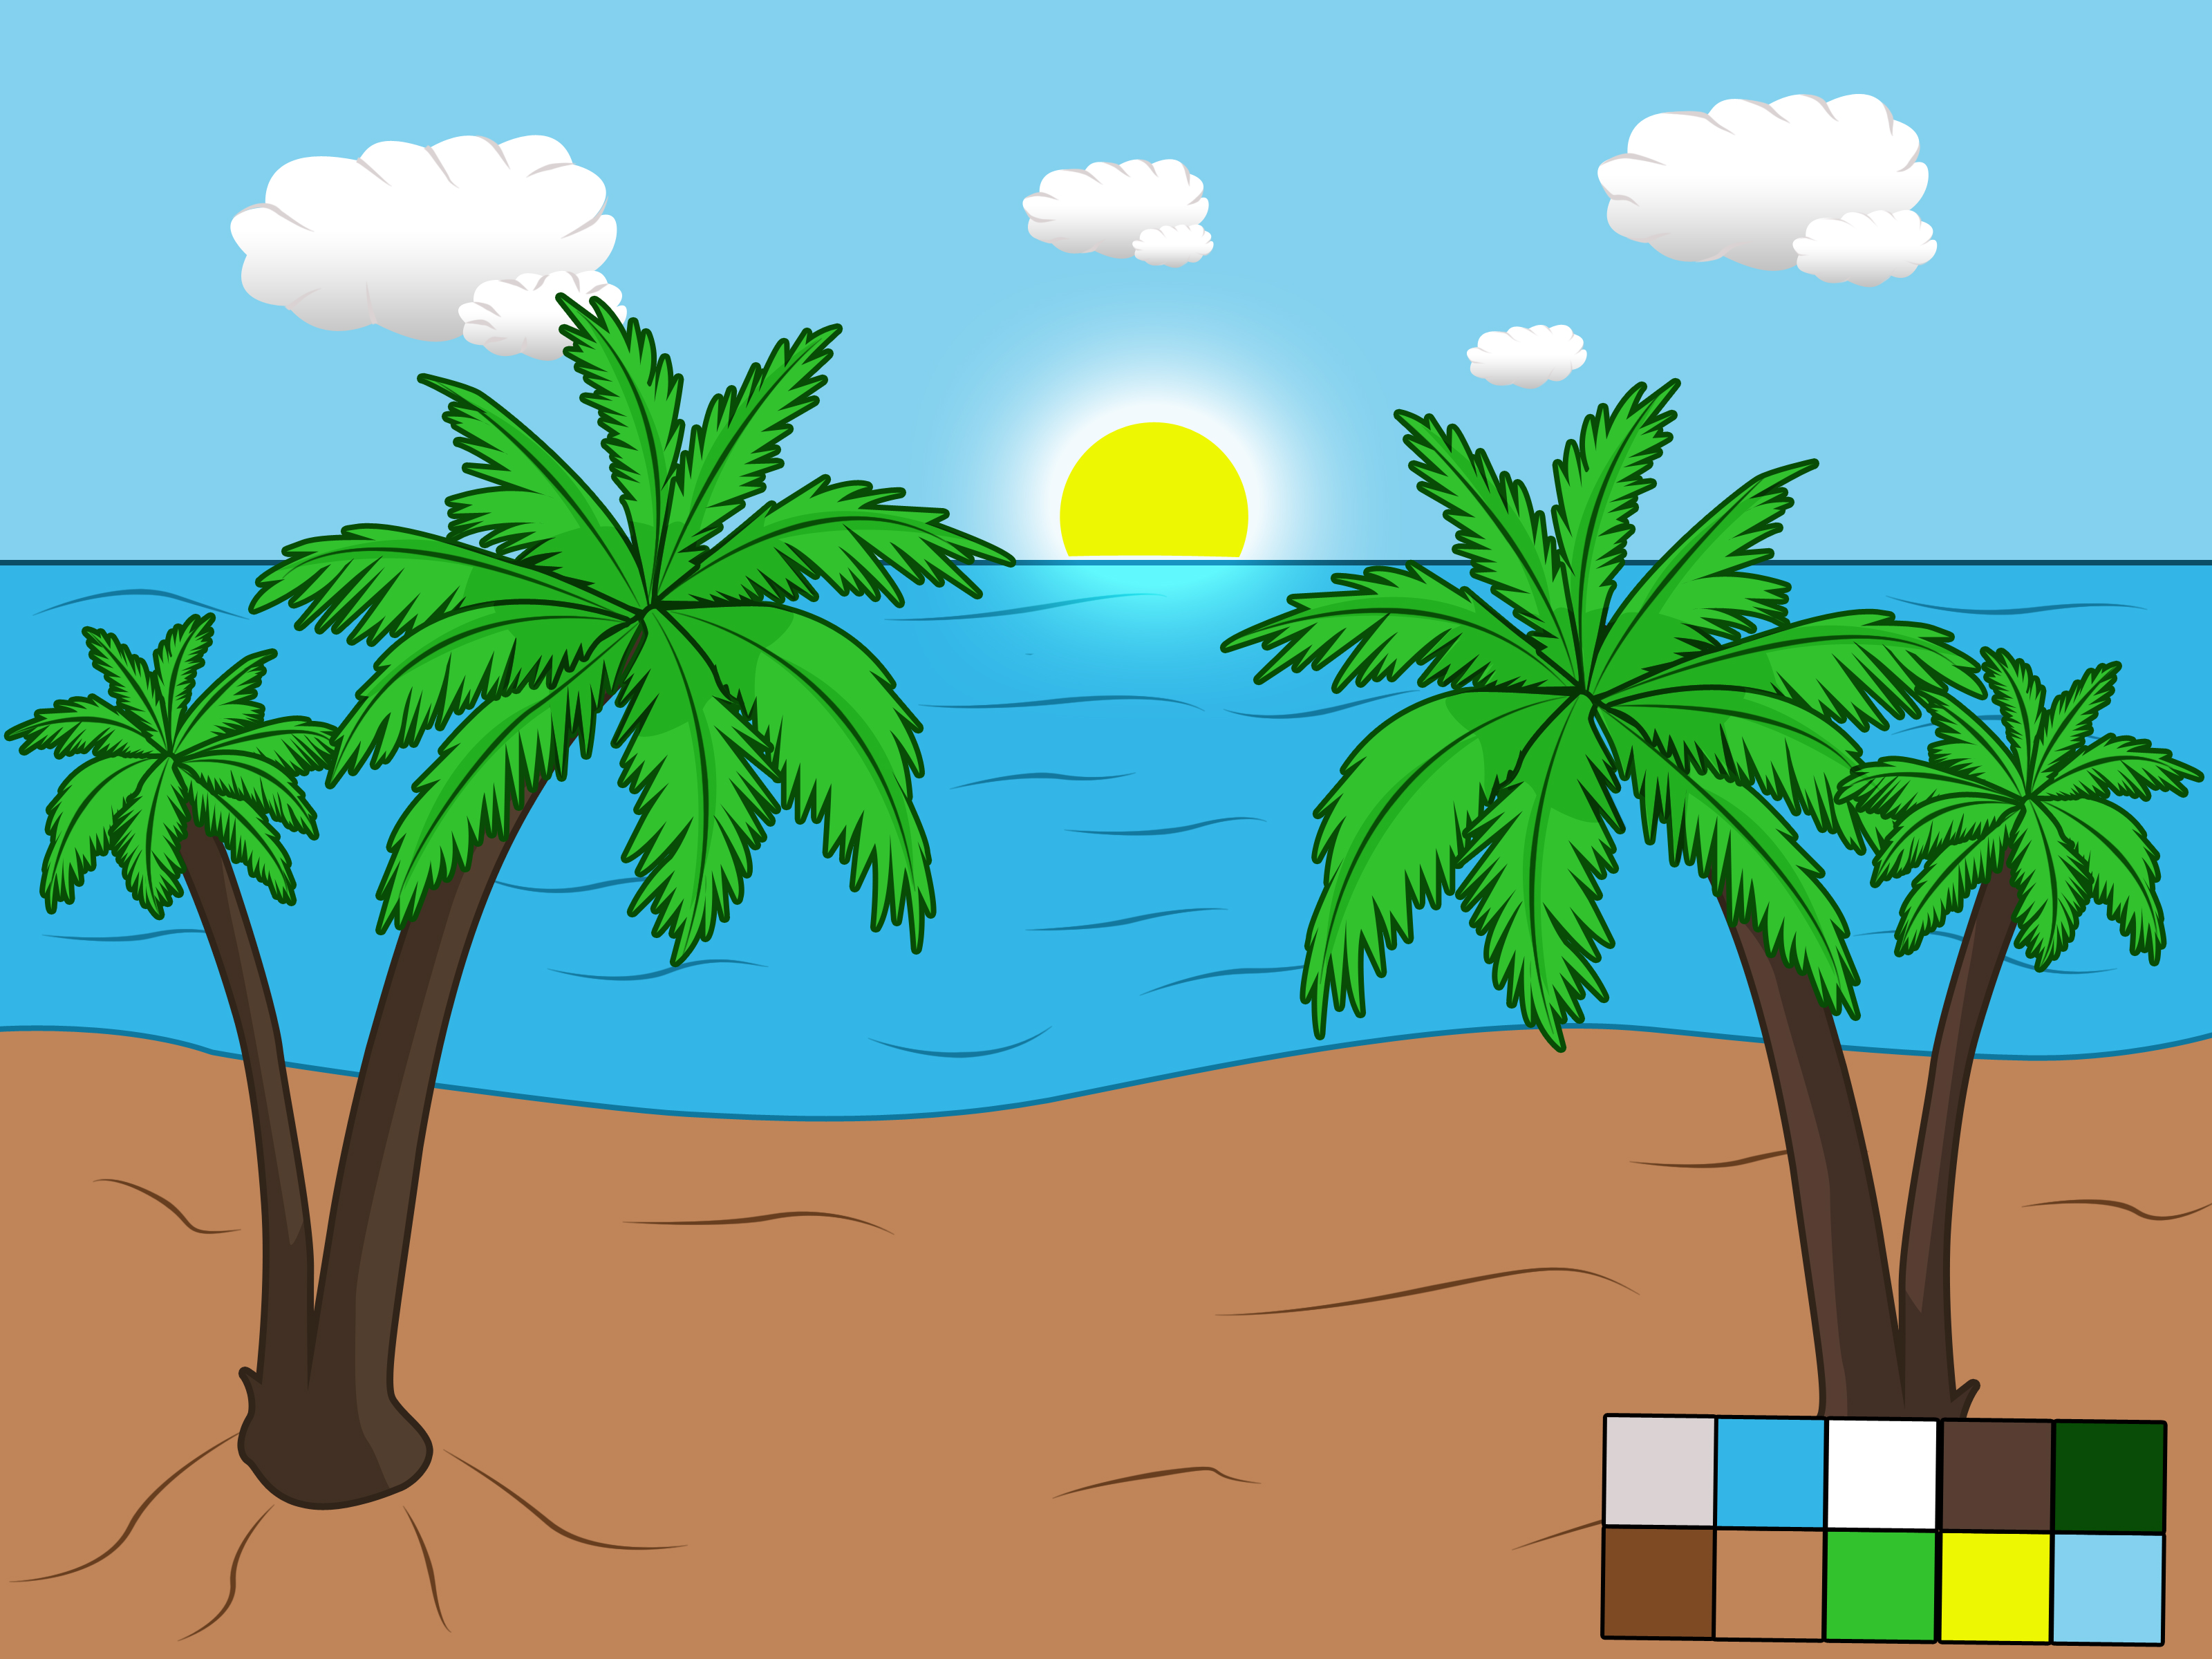 Drawn scenery morning Beach Draw Scene: Pictures)